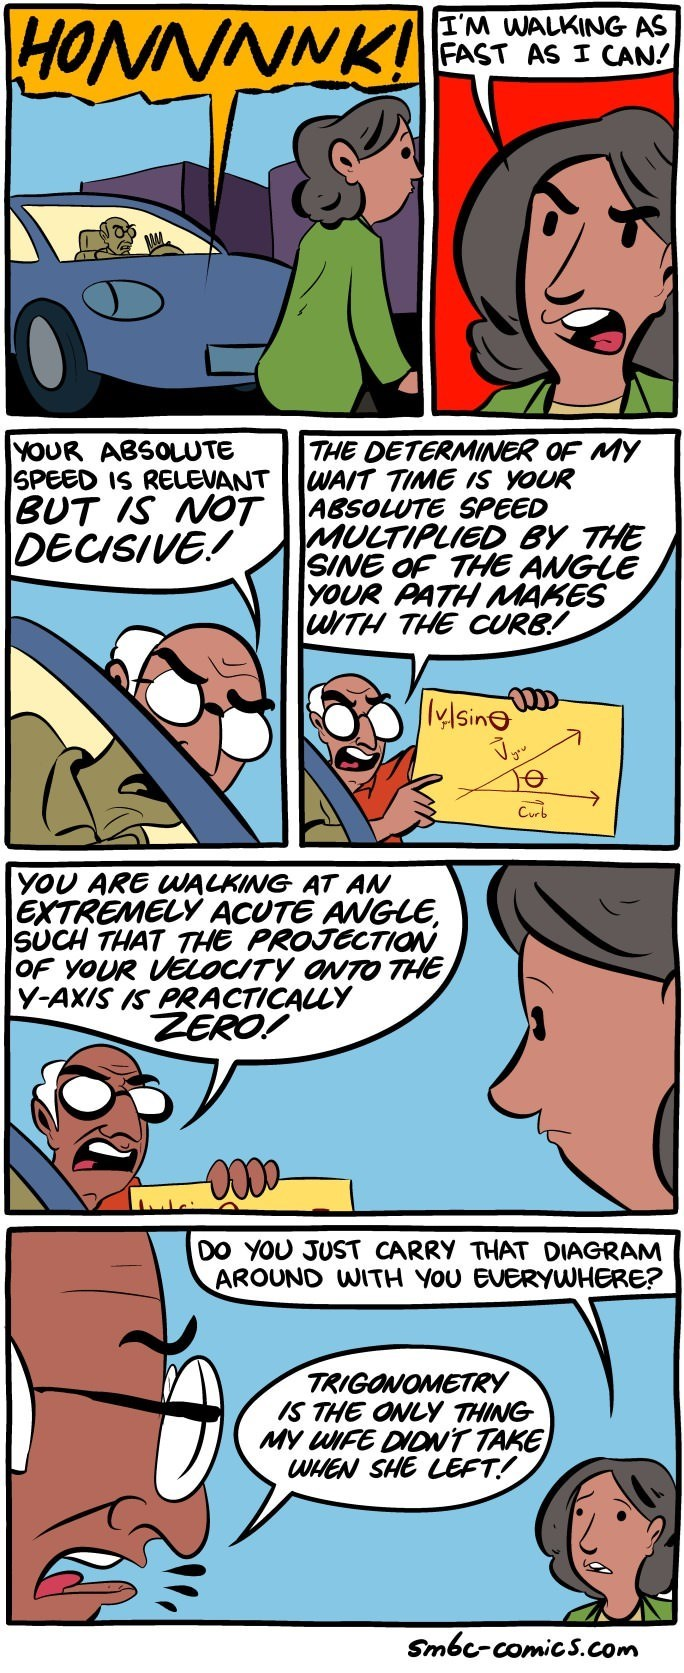 funny-web-comics-this-is-the-situation-where-trigonometry-is-needed